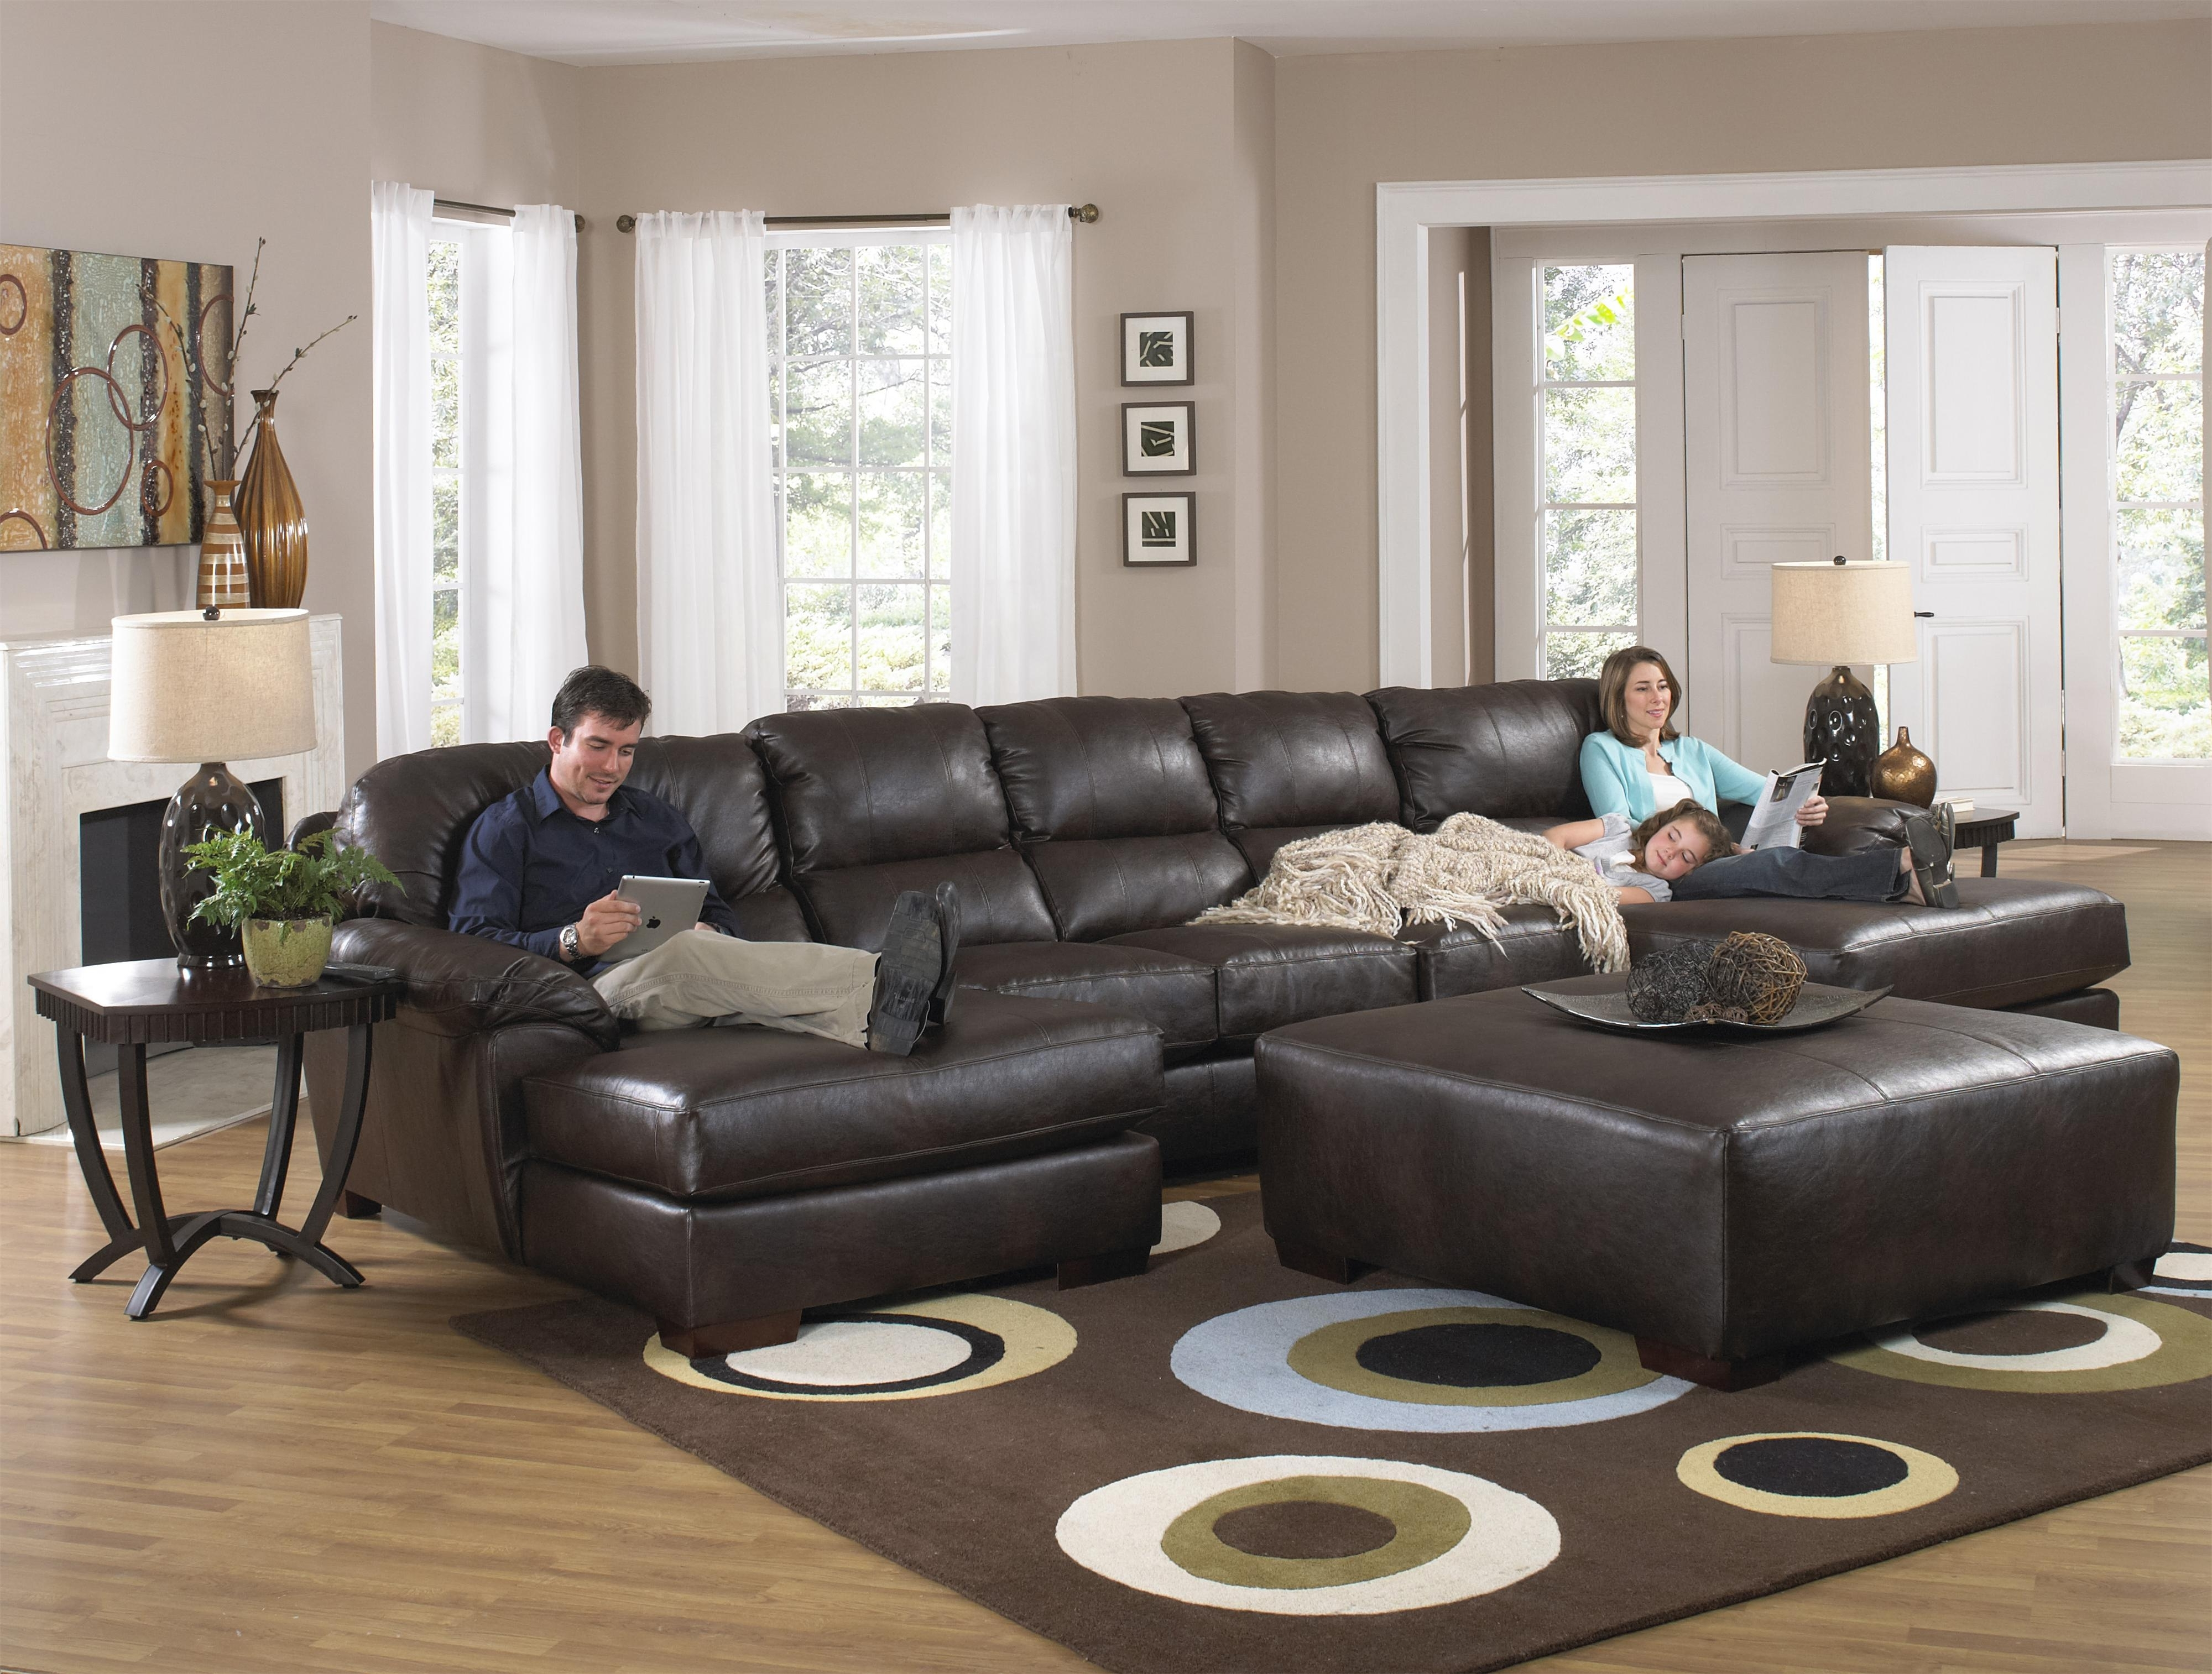 Two Chaise Sectional Sofa With Five Total Seatsjackson With Most Up To Date Clearance Sectional Sofas (View 18 of 20)